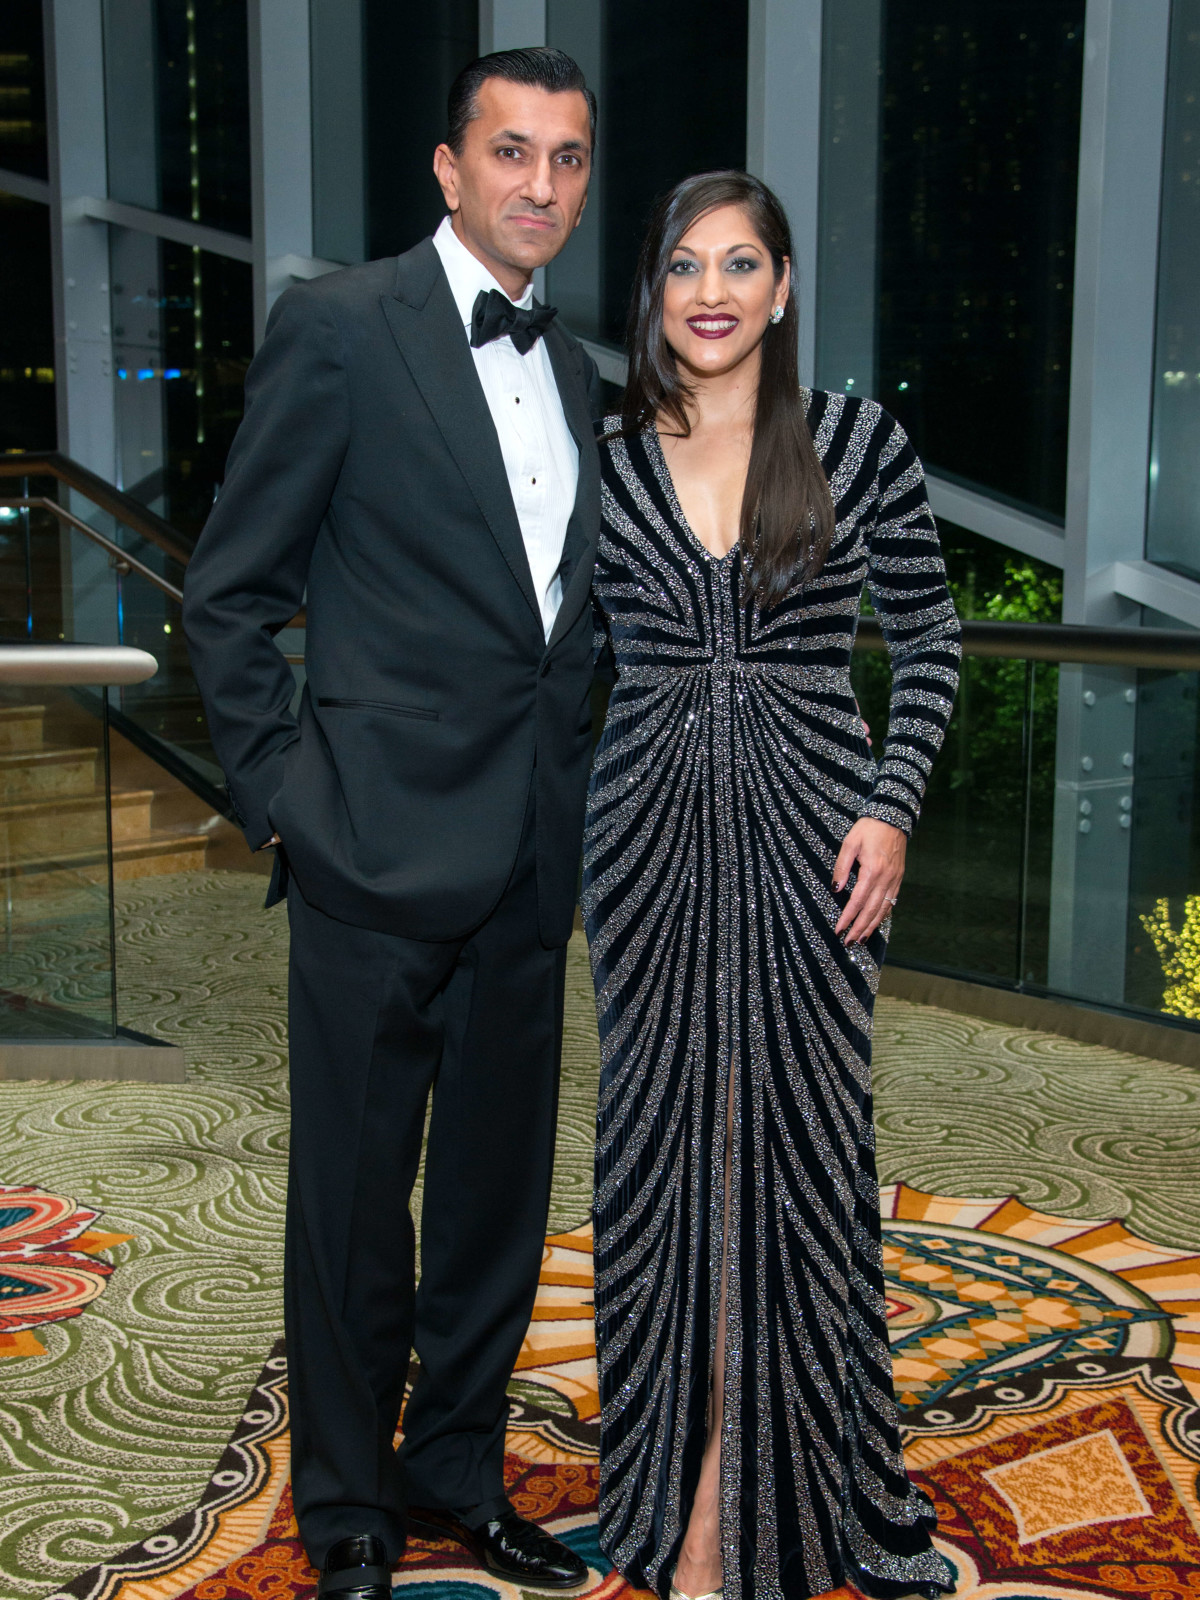 Houston, Women of Distinction fashionable gowns, Feb 2017, Ajay Khurana, Dr. Sippi Khurana